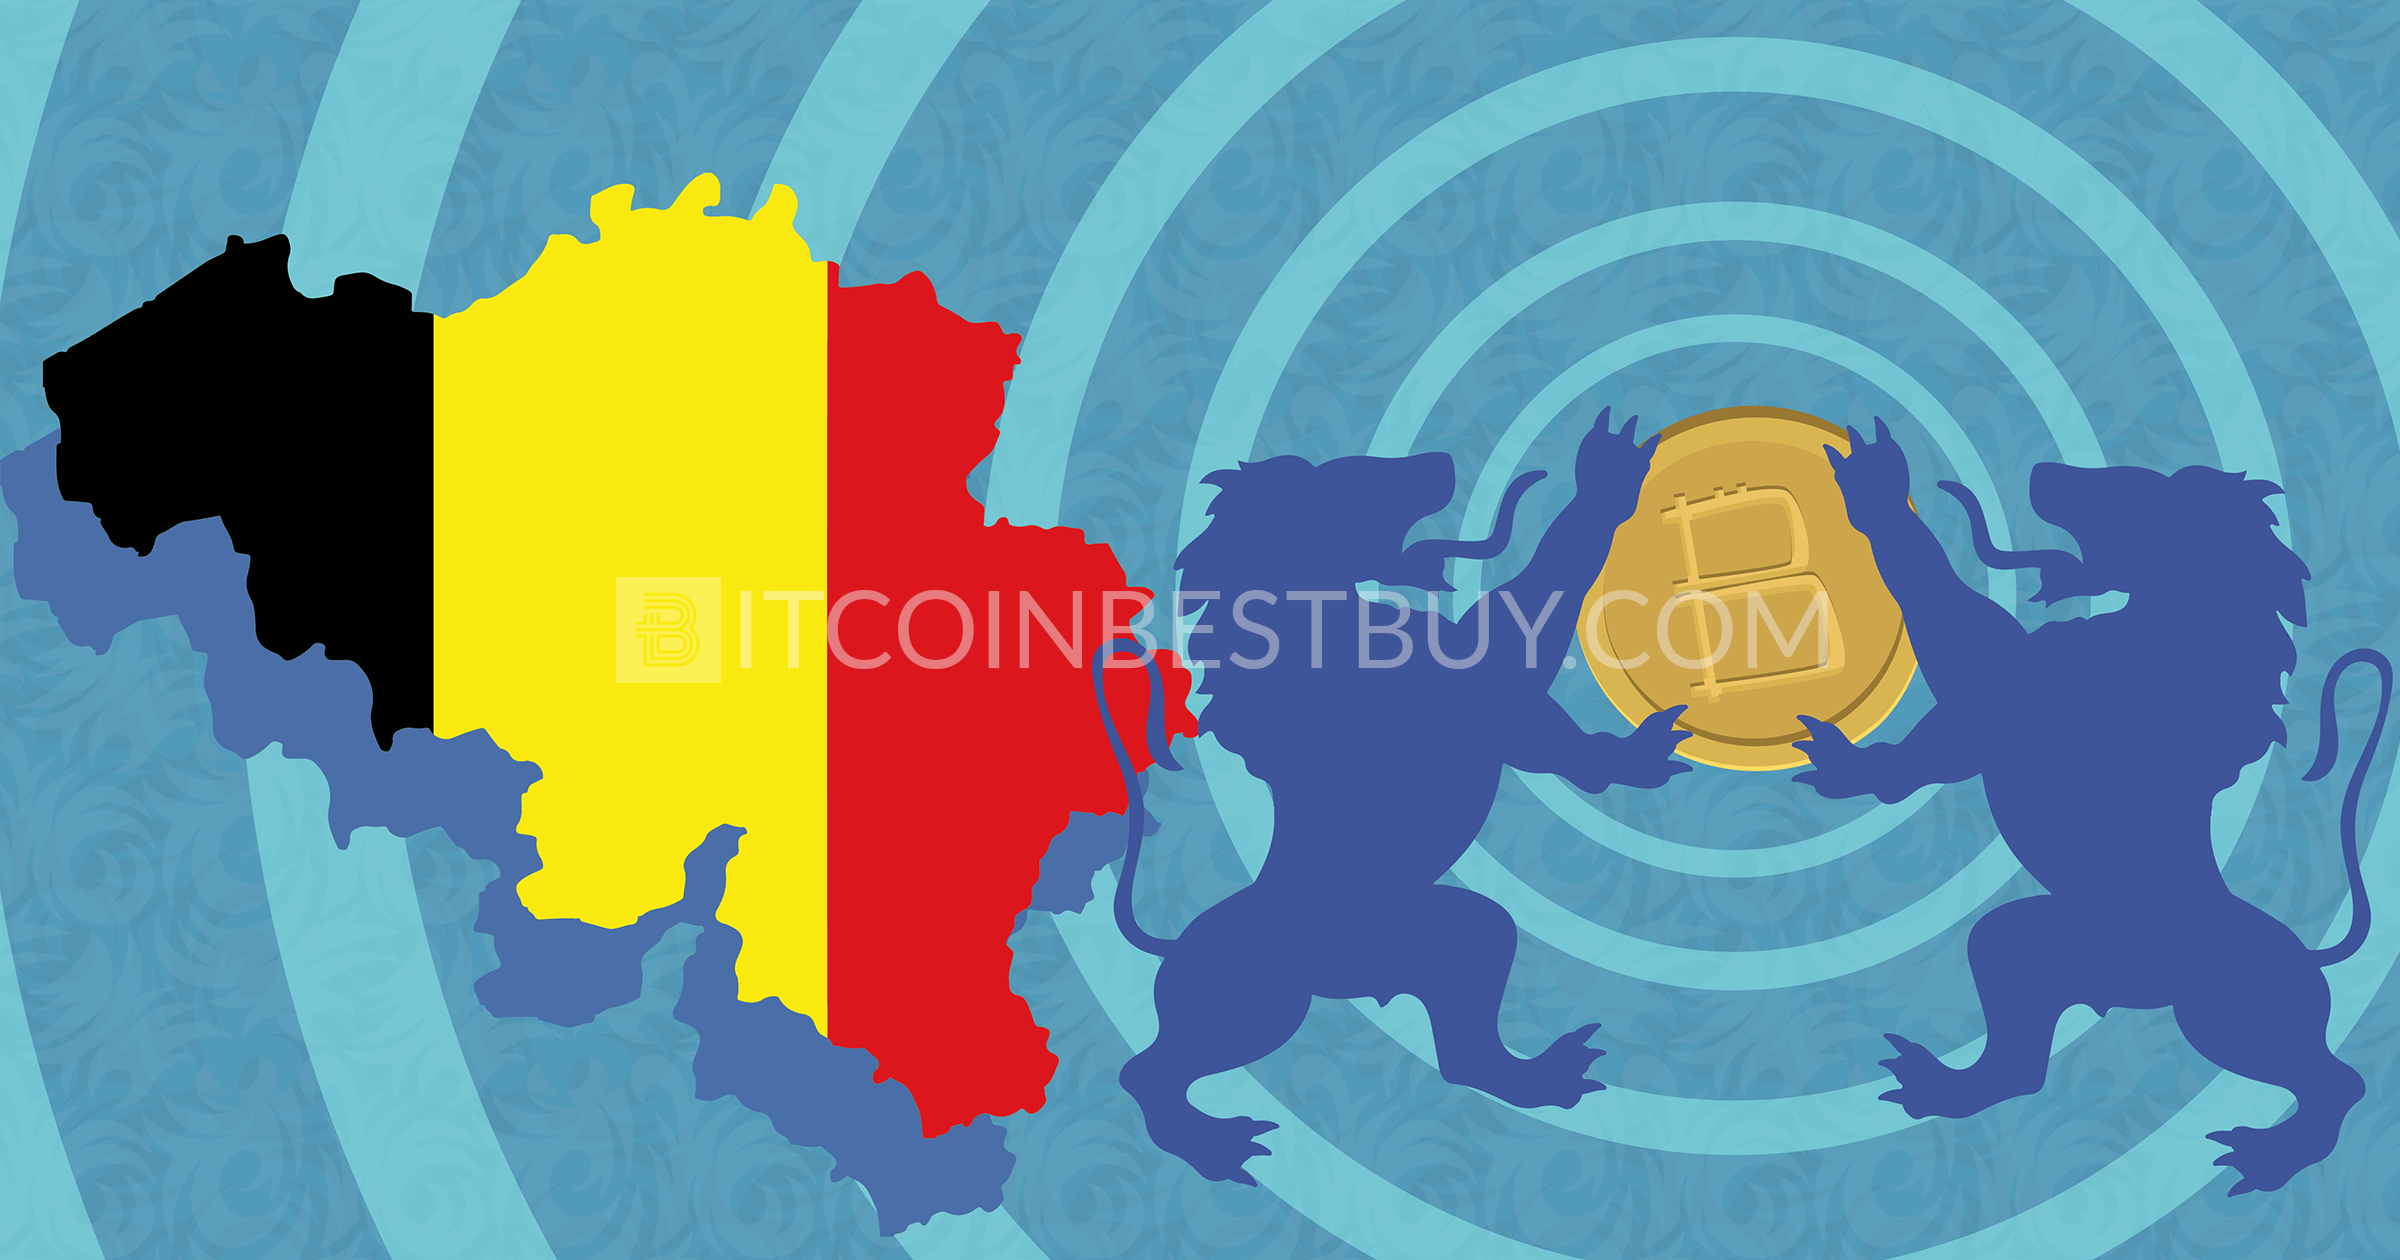 Where to buy bitcoin in Belgium